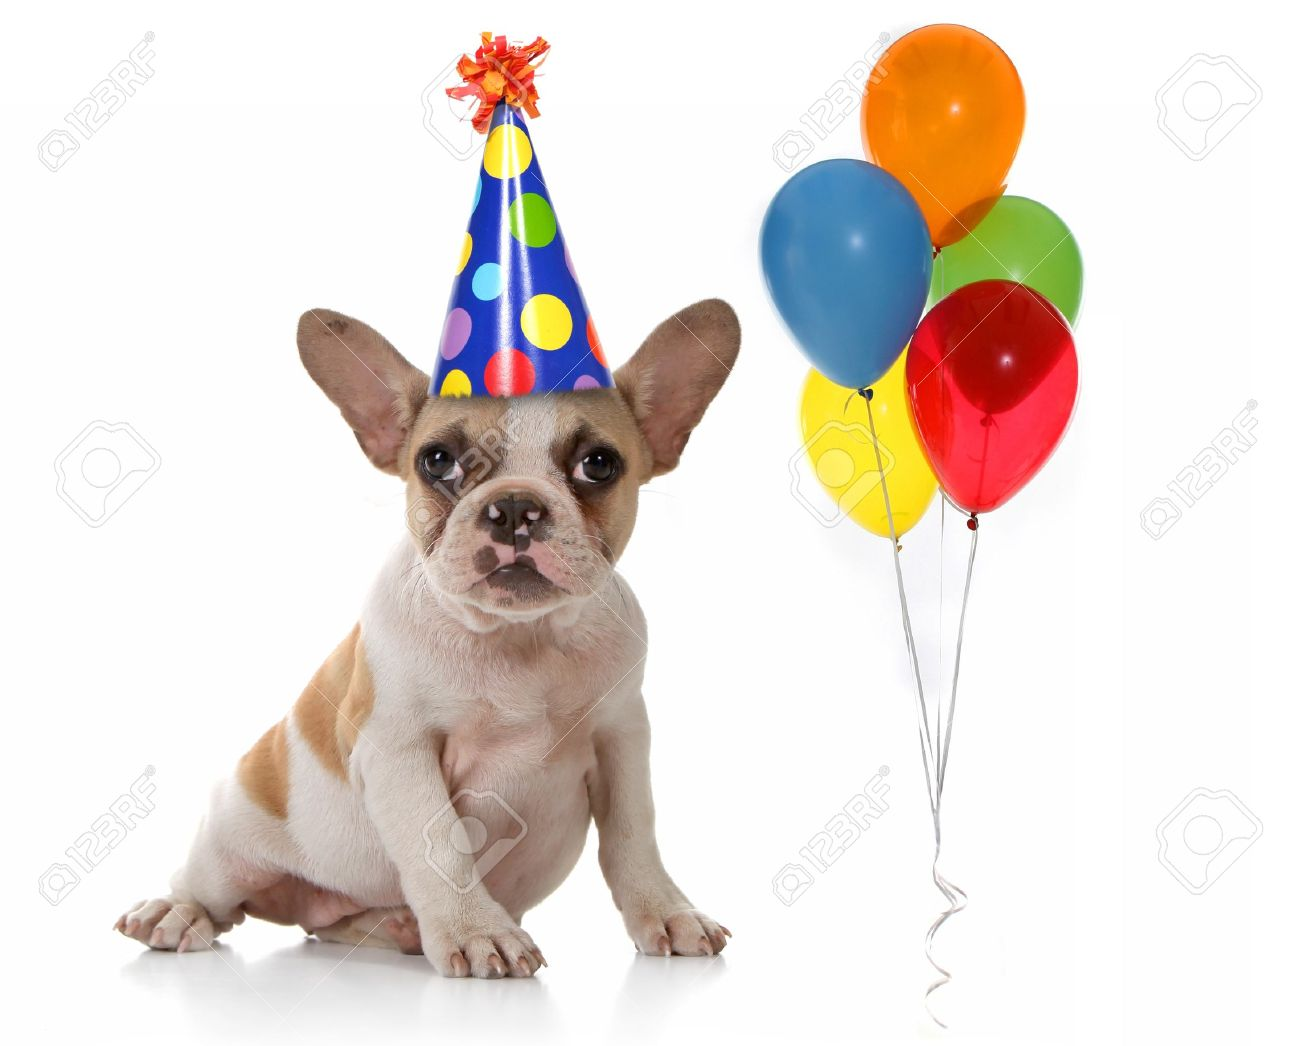 Sitting Puppy Dog With Birthday Party Hat And Balloons Studio Shot Stock Photo